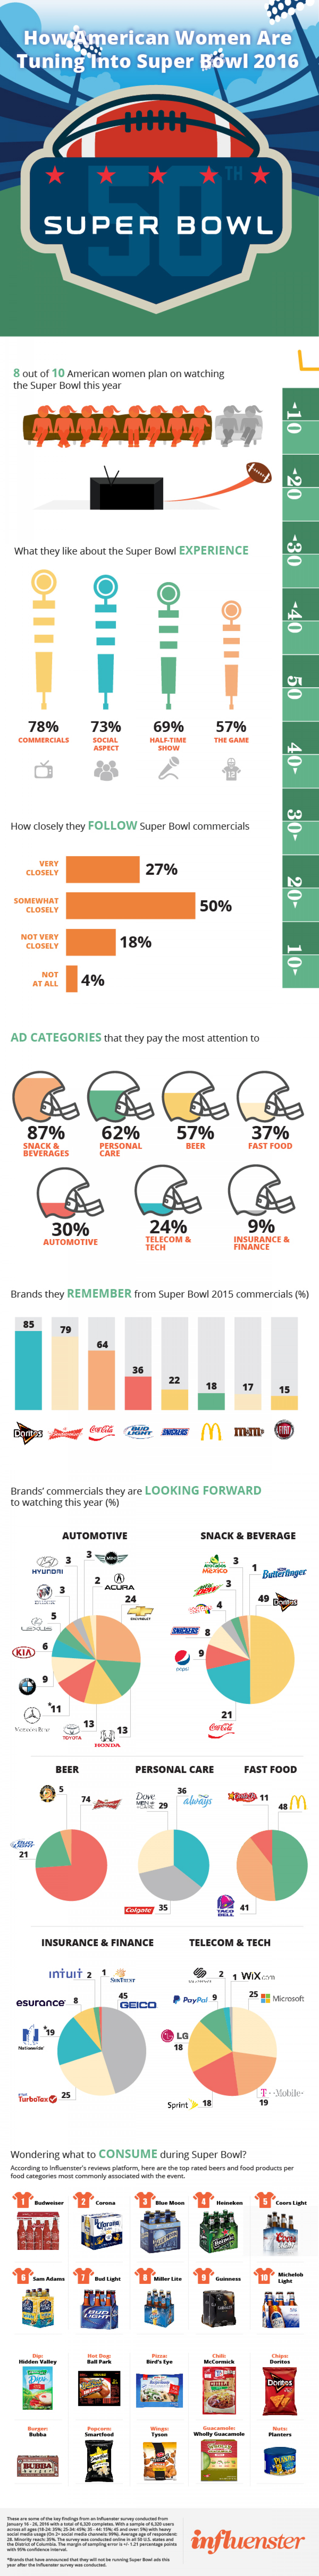 Super Bowl 50 Infographic: American Women Enjoy Commercials  More Than The Halftime Show, The Social Experience and The Game Itself Infographic